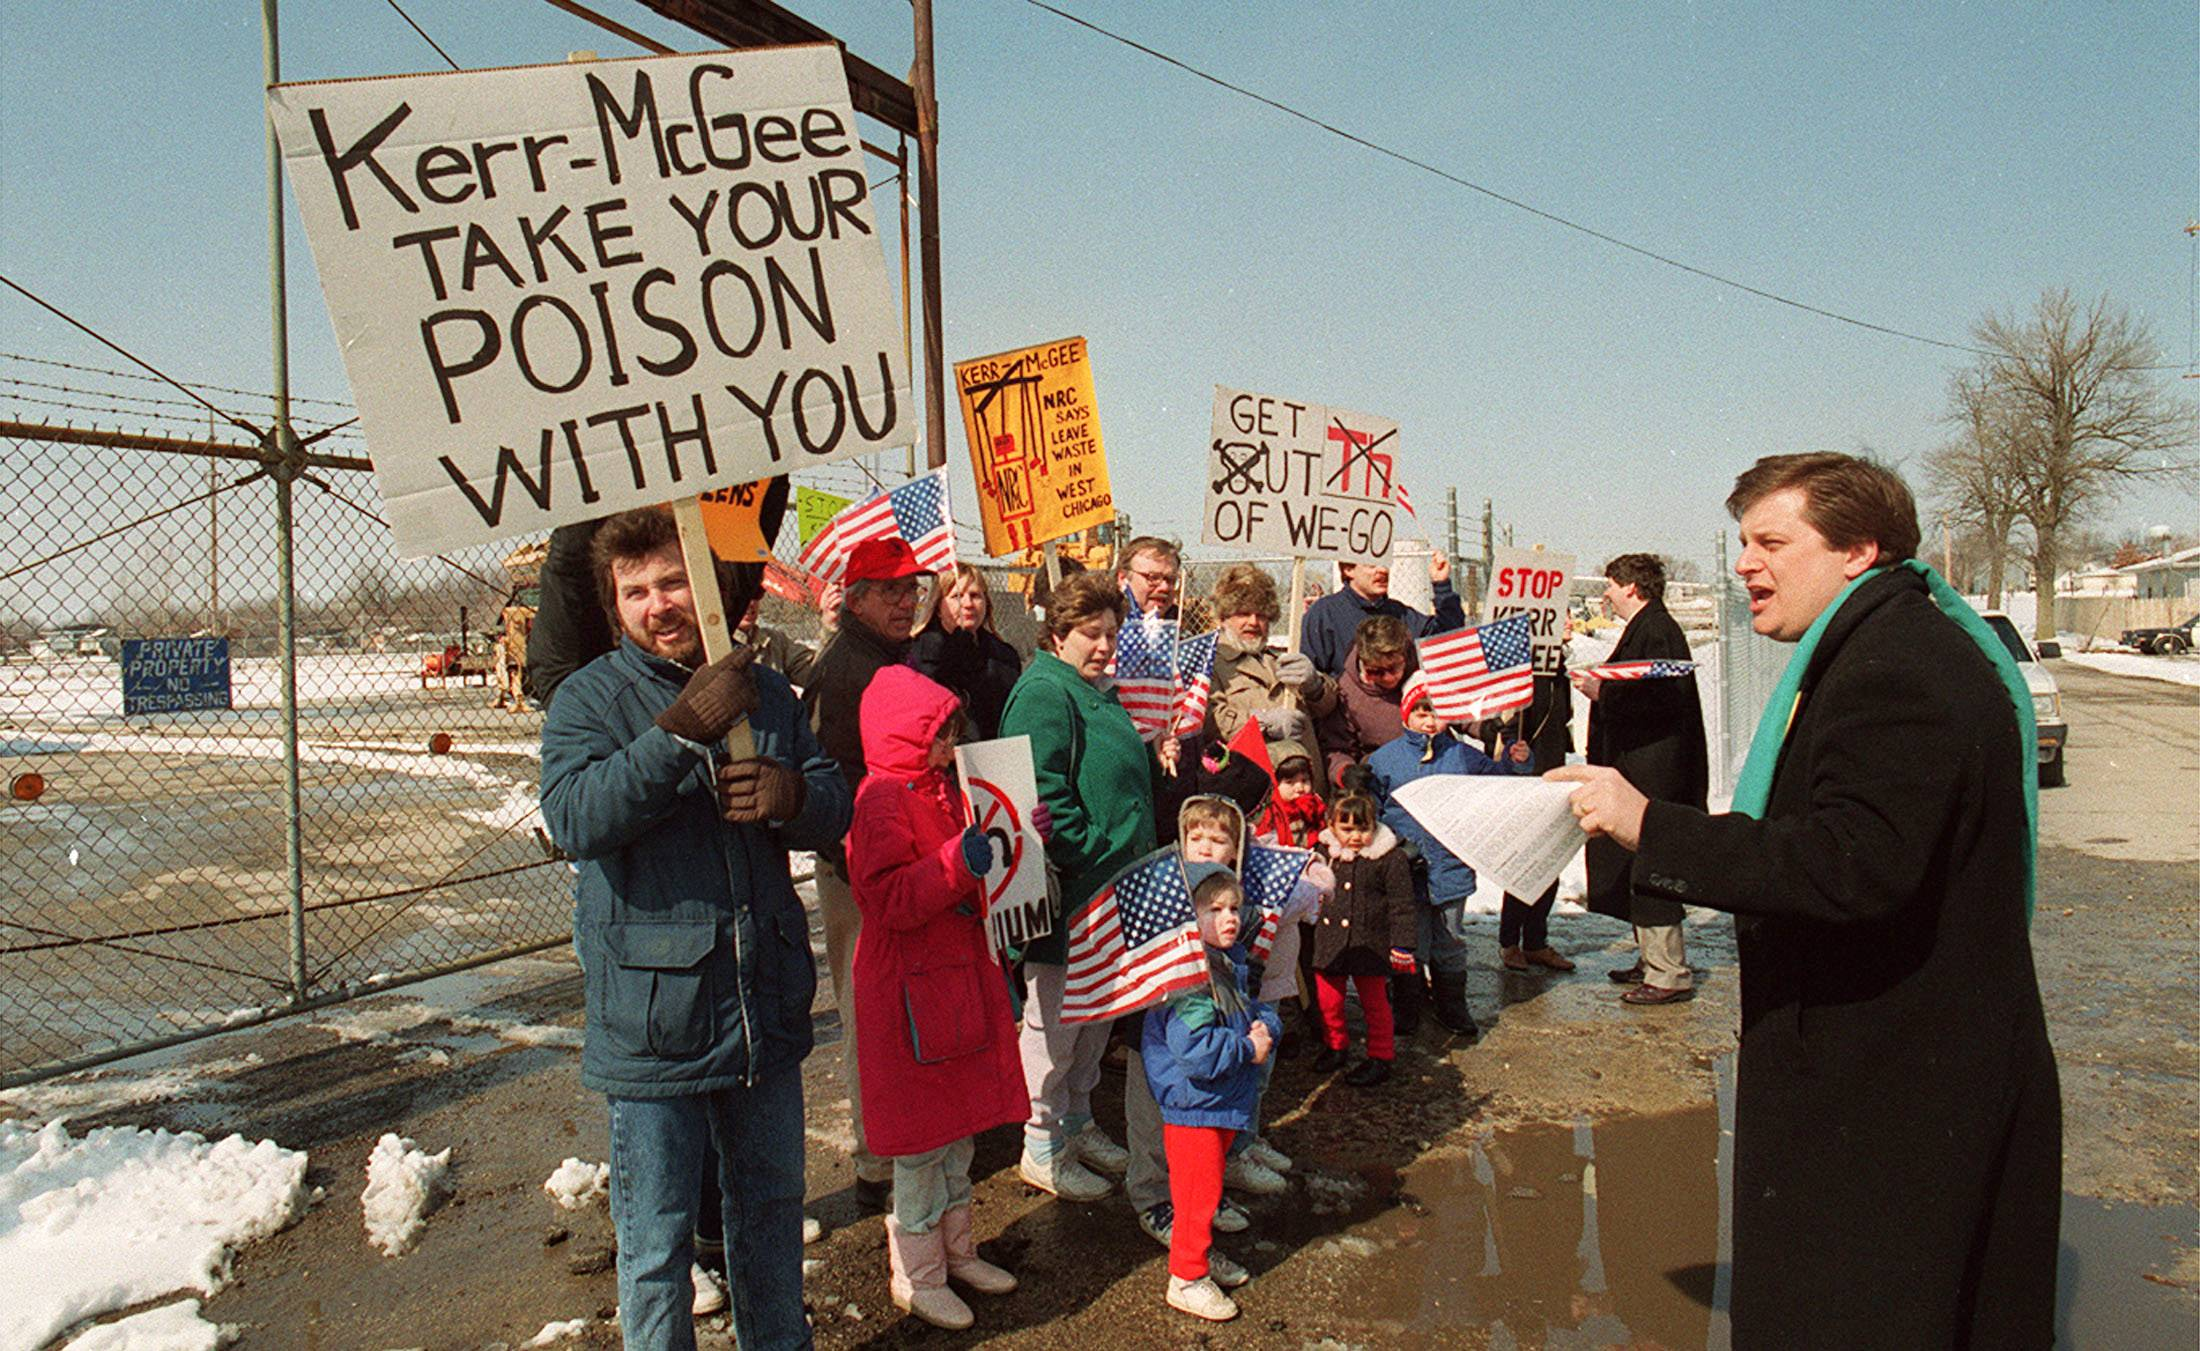 Members of the Thorium Action Group protested on March 6, 1990, at the former Kerr-McGee factory site in West Chicago, where radioactive thorium was produced. Prior to this week's $5 billion settlement, the city forged its own agreement with the federal government to ensure cleanup of the former factory site and other contaminated areas.